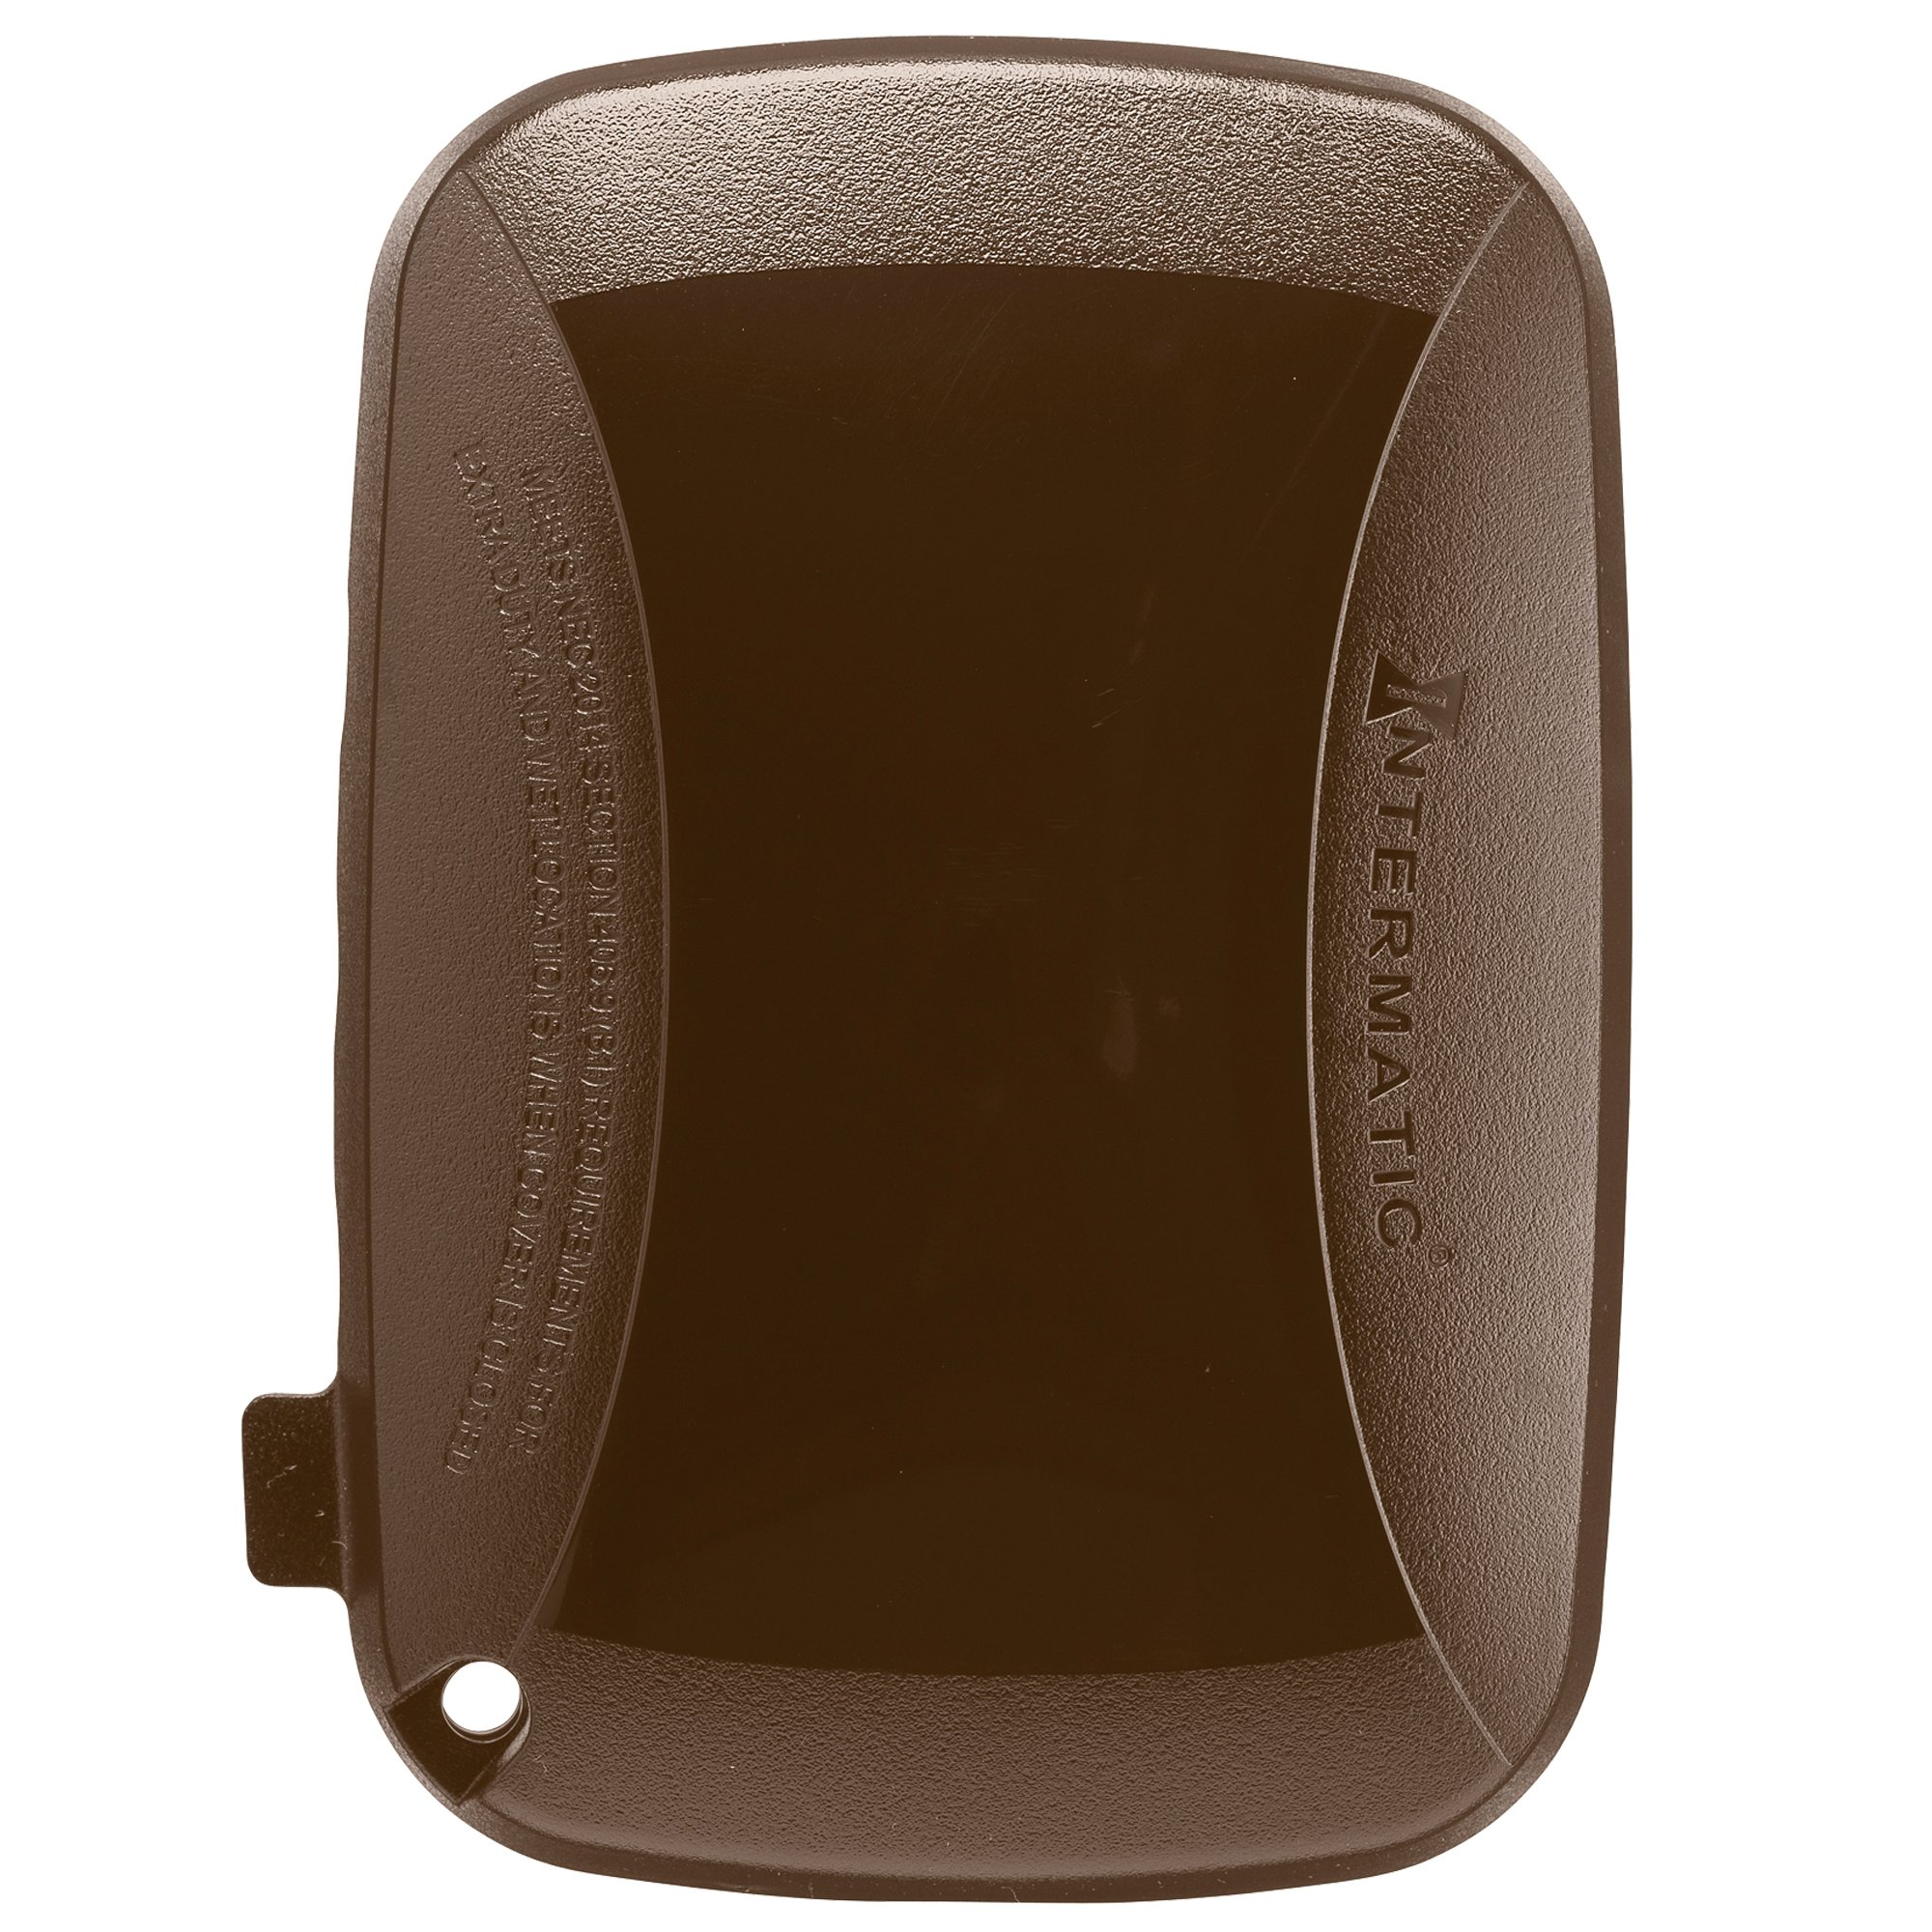 Intermatic WP5110BR Extra Duty Plastic Weatherproof Cover, 3.625-Inch Single Gang, Bronze